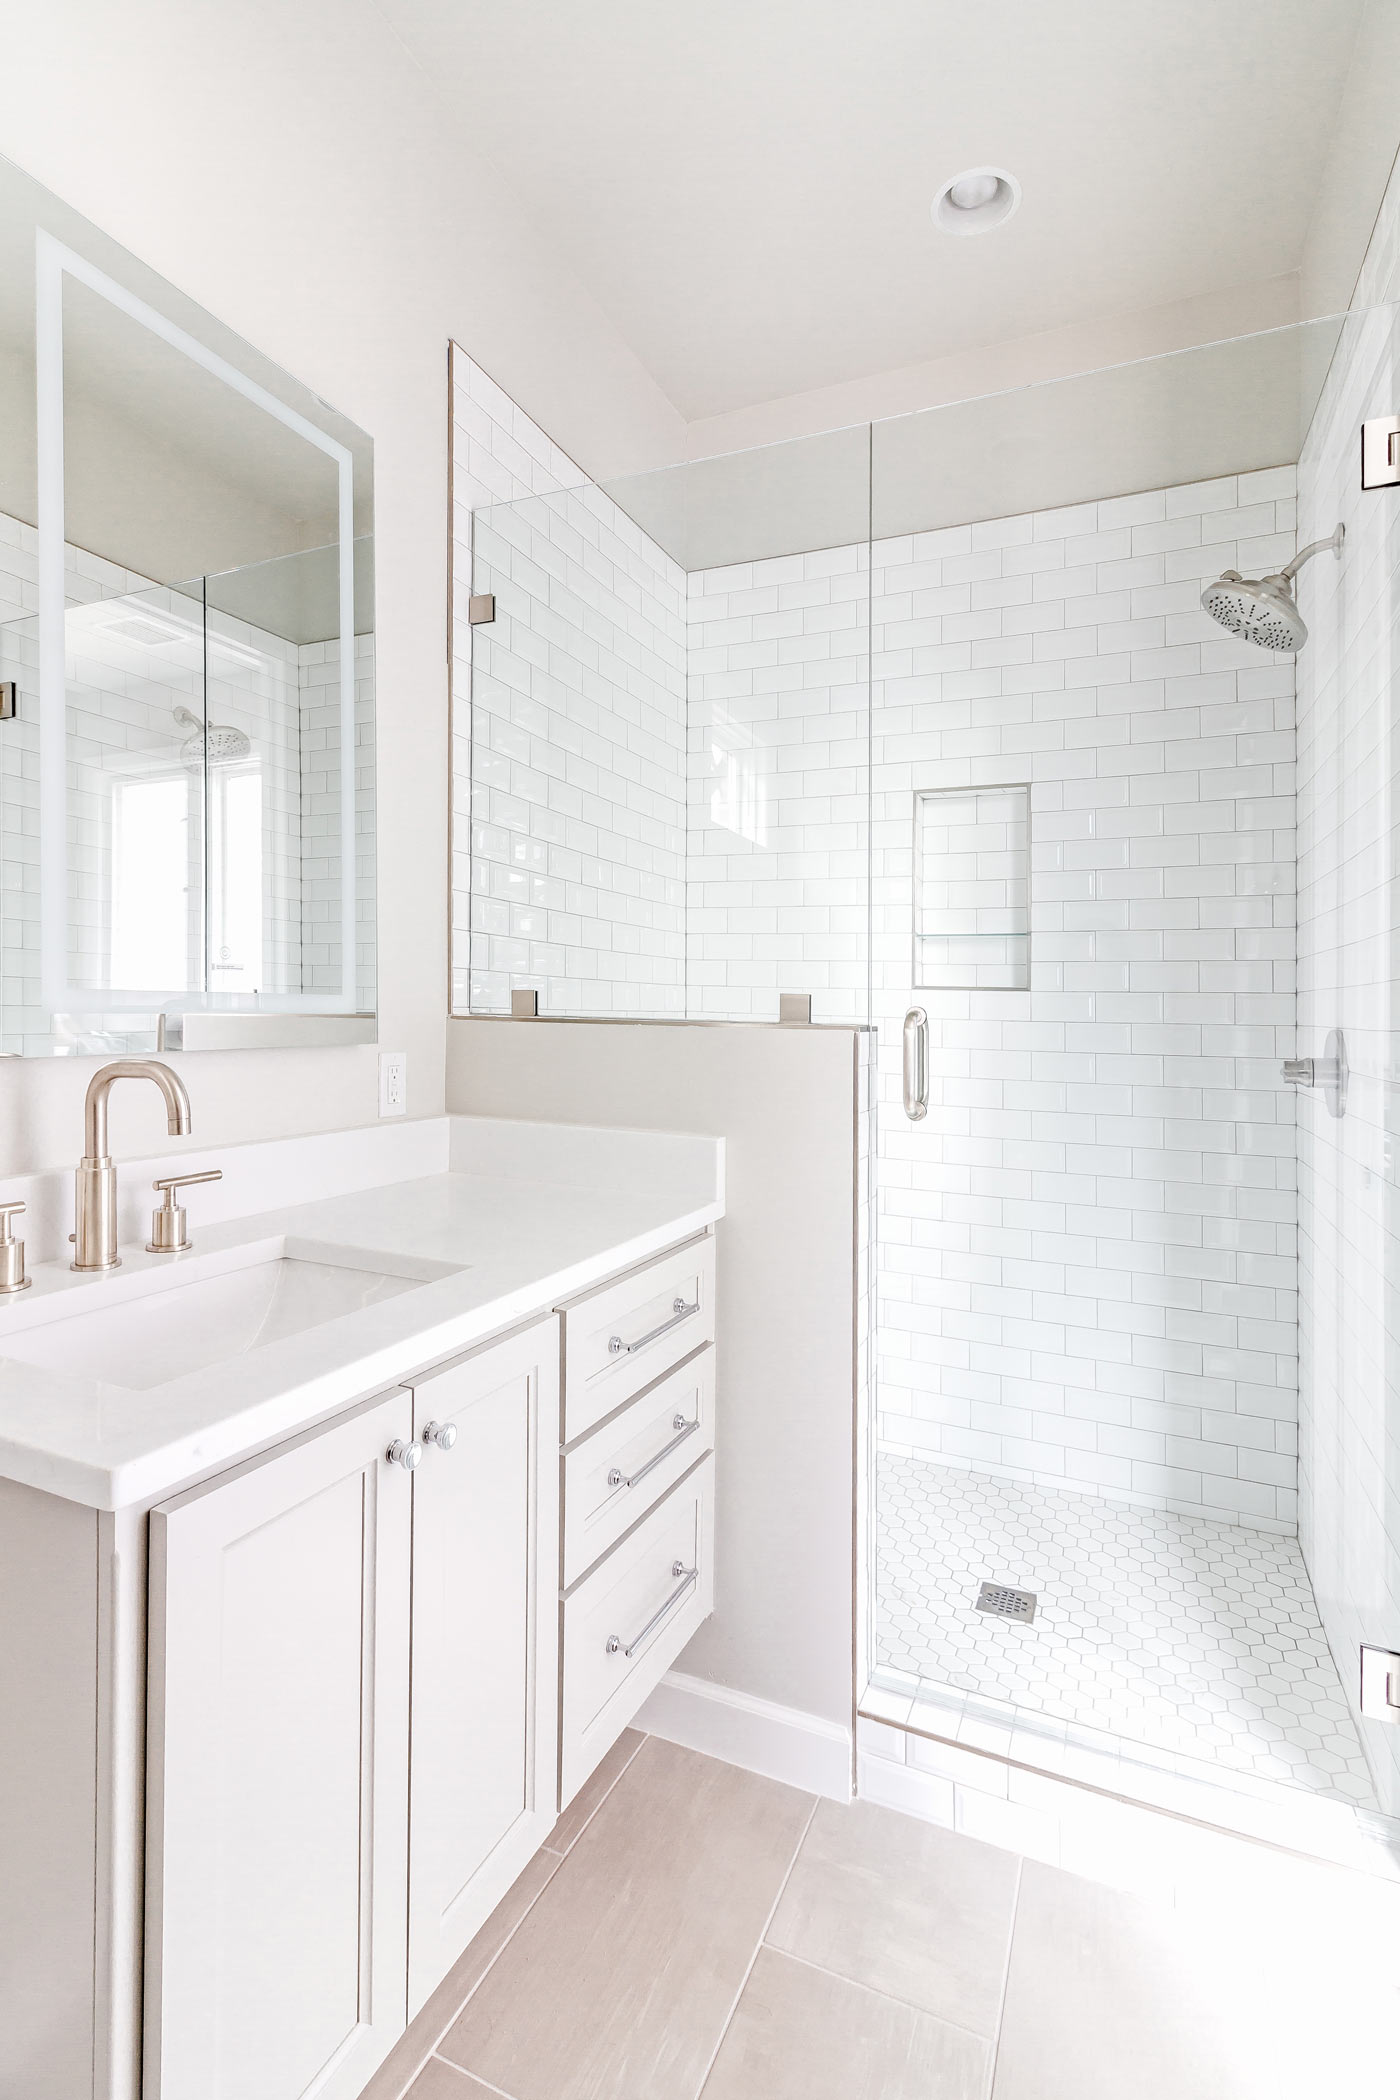 Bathroom Remodel Projects In The Tulsa Area Home Innovations